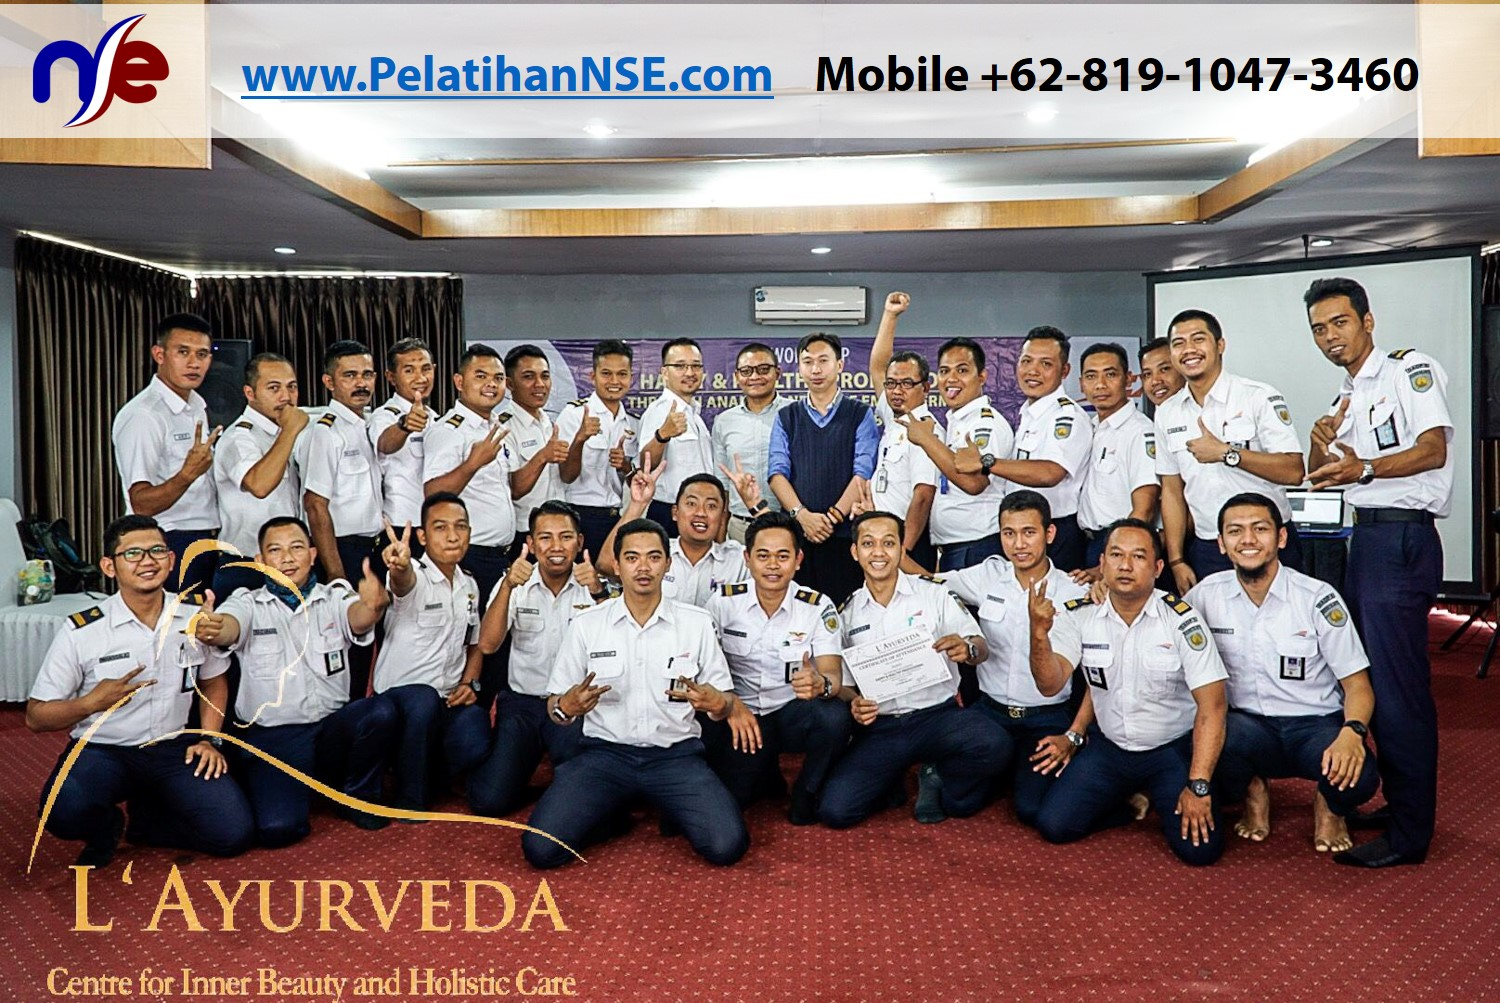 Happy Healthy Professional Kereta Api Indonesia 6-7 September 2017 - Foto Bersama